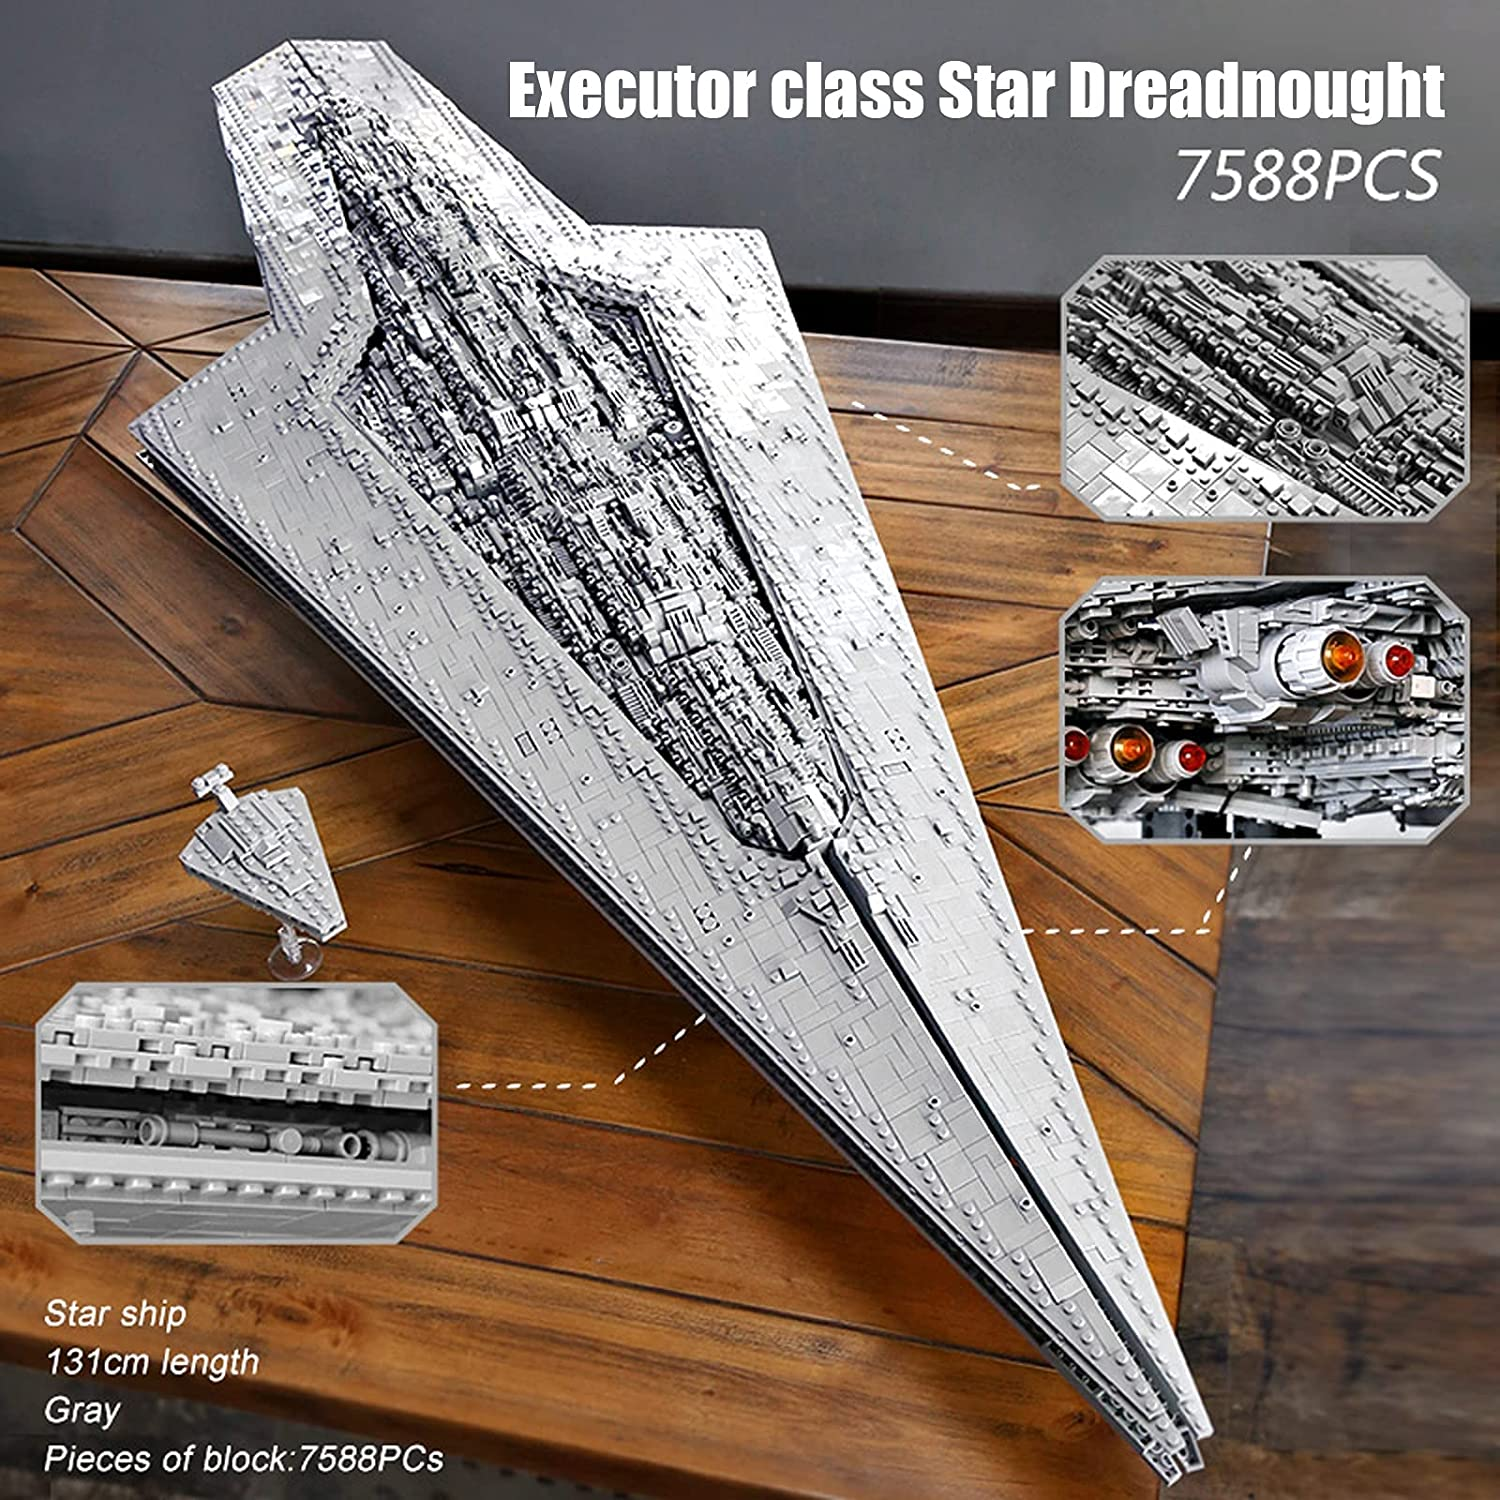 SW Executor Class Super Dreadnought Star Destroyer Lego Building Kit 3